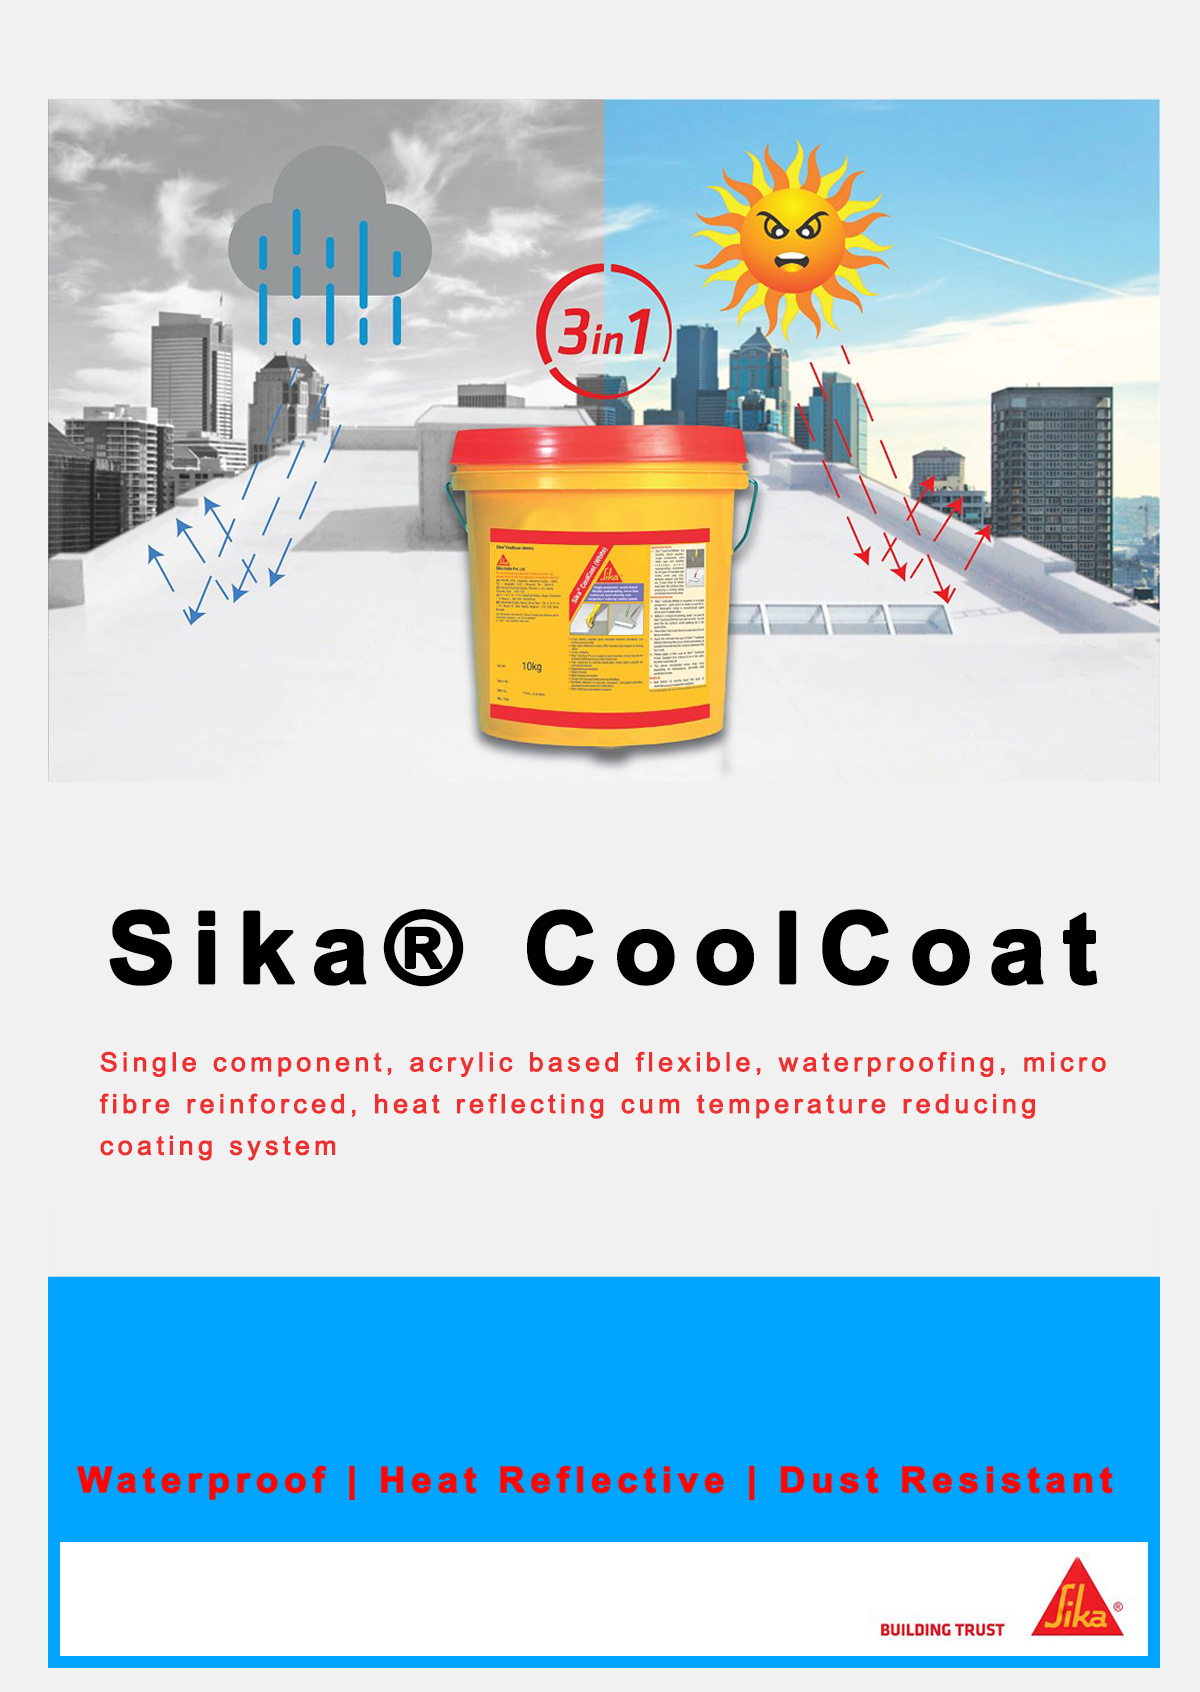 Sika cool coat